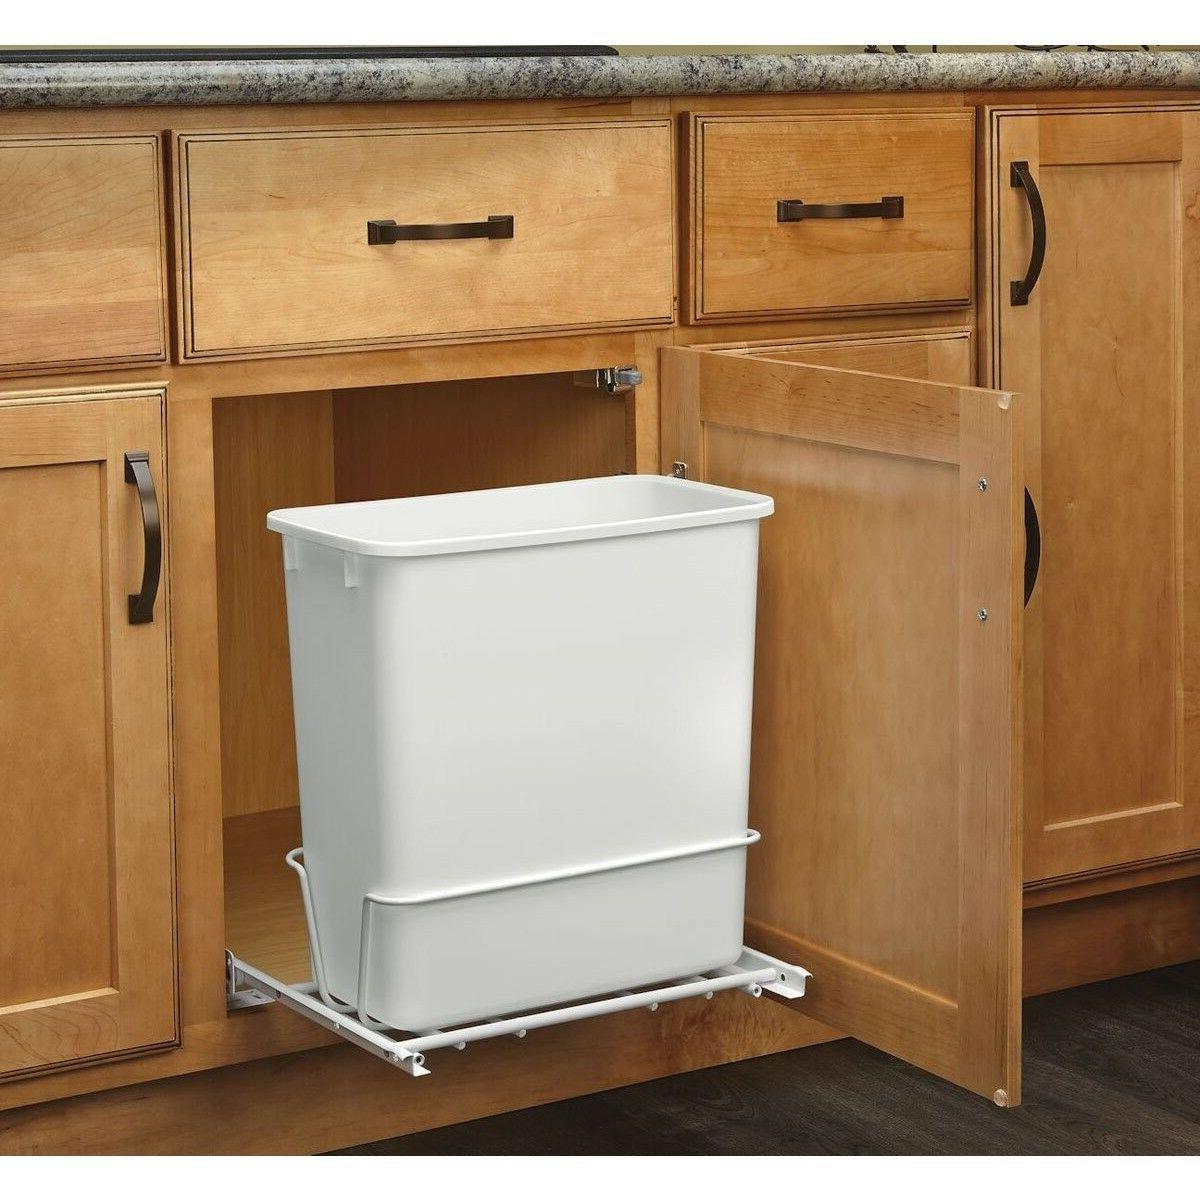 Narrow Trash Kitchen Bathroom Waste Under White